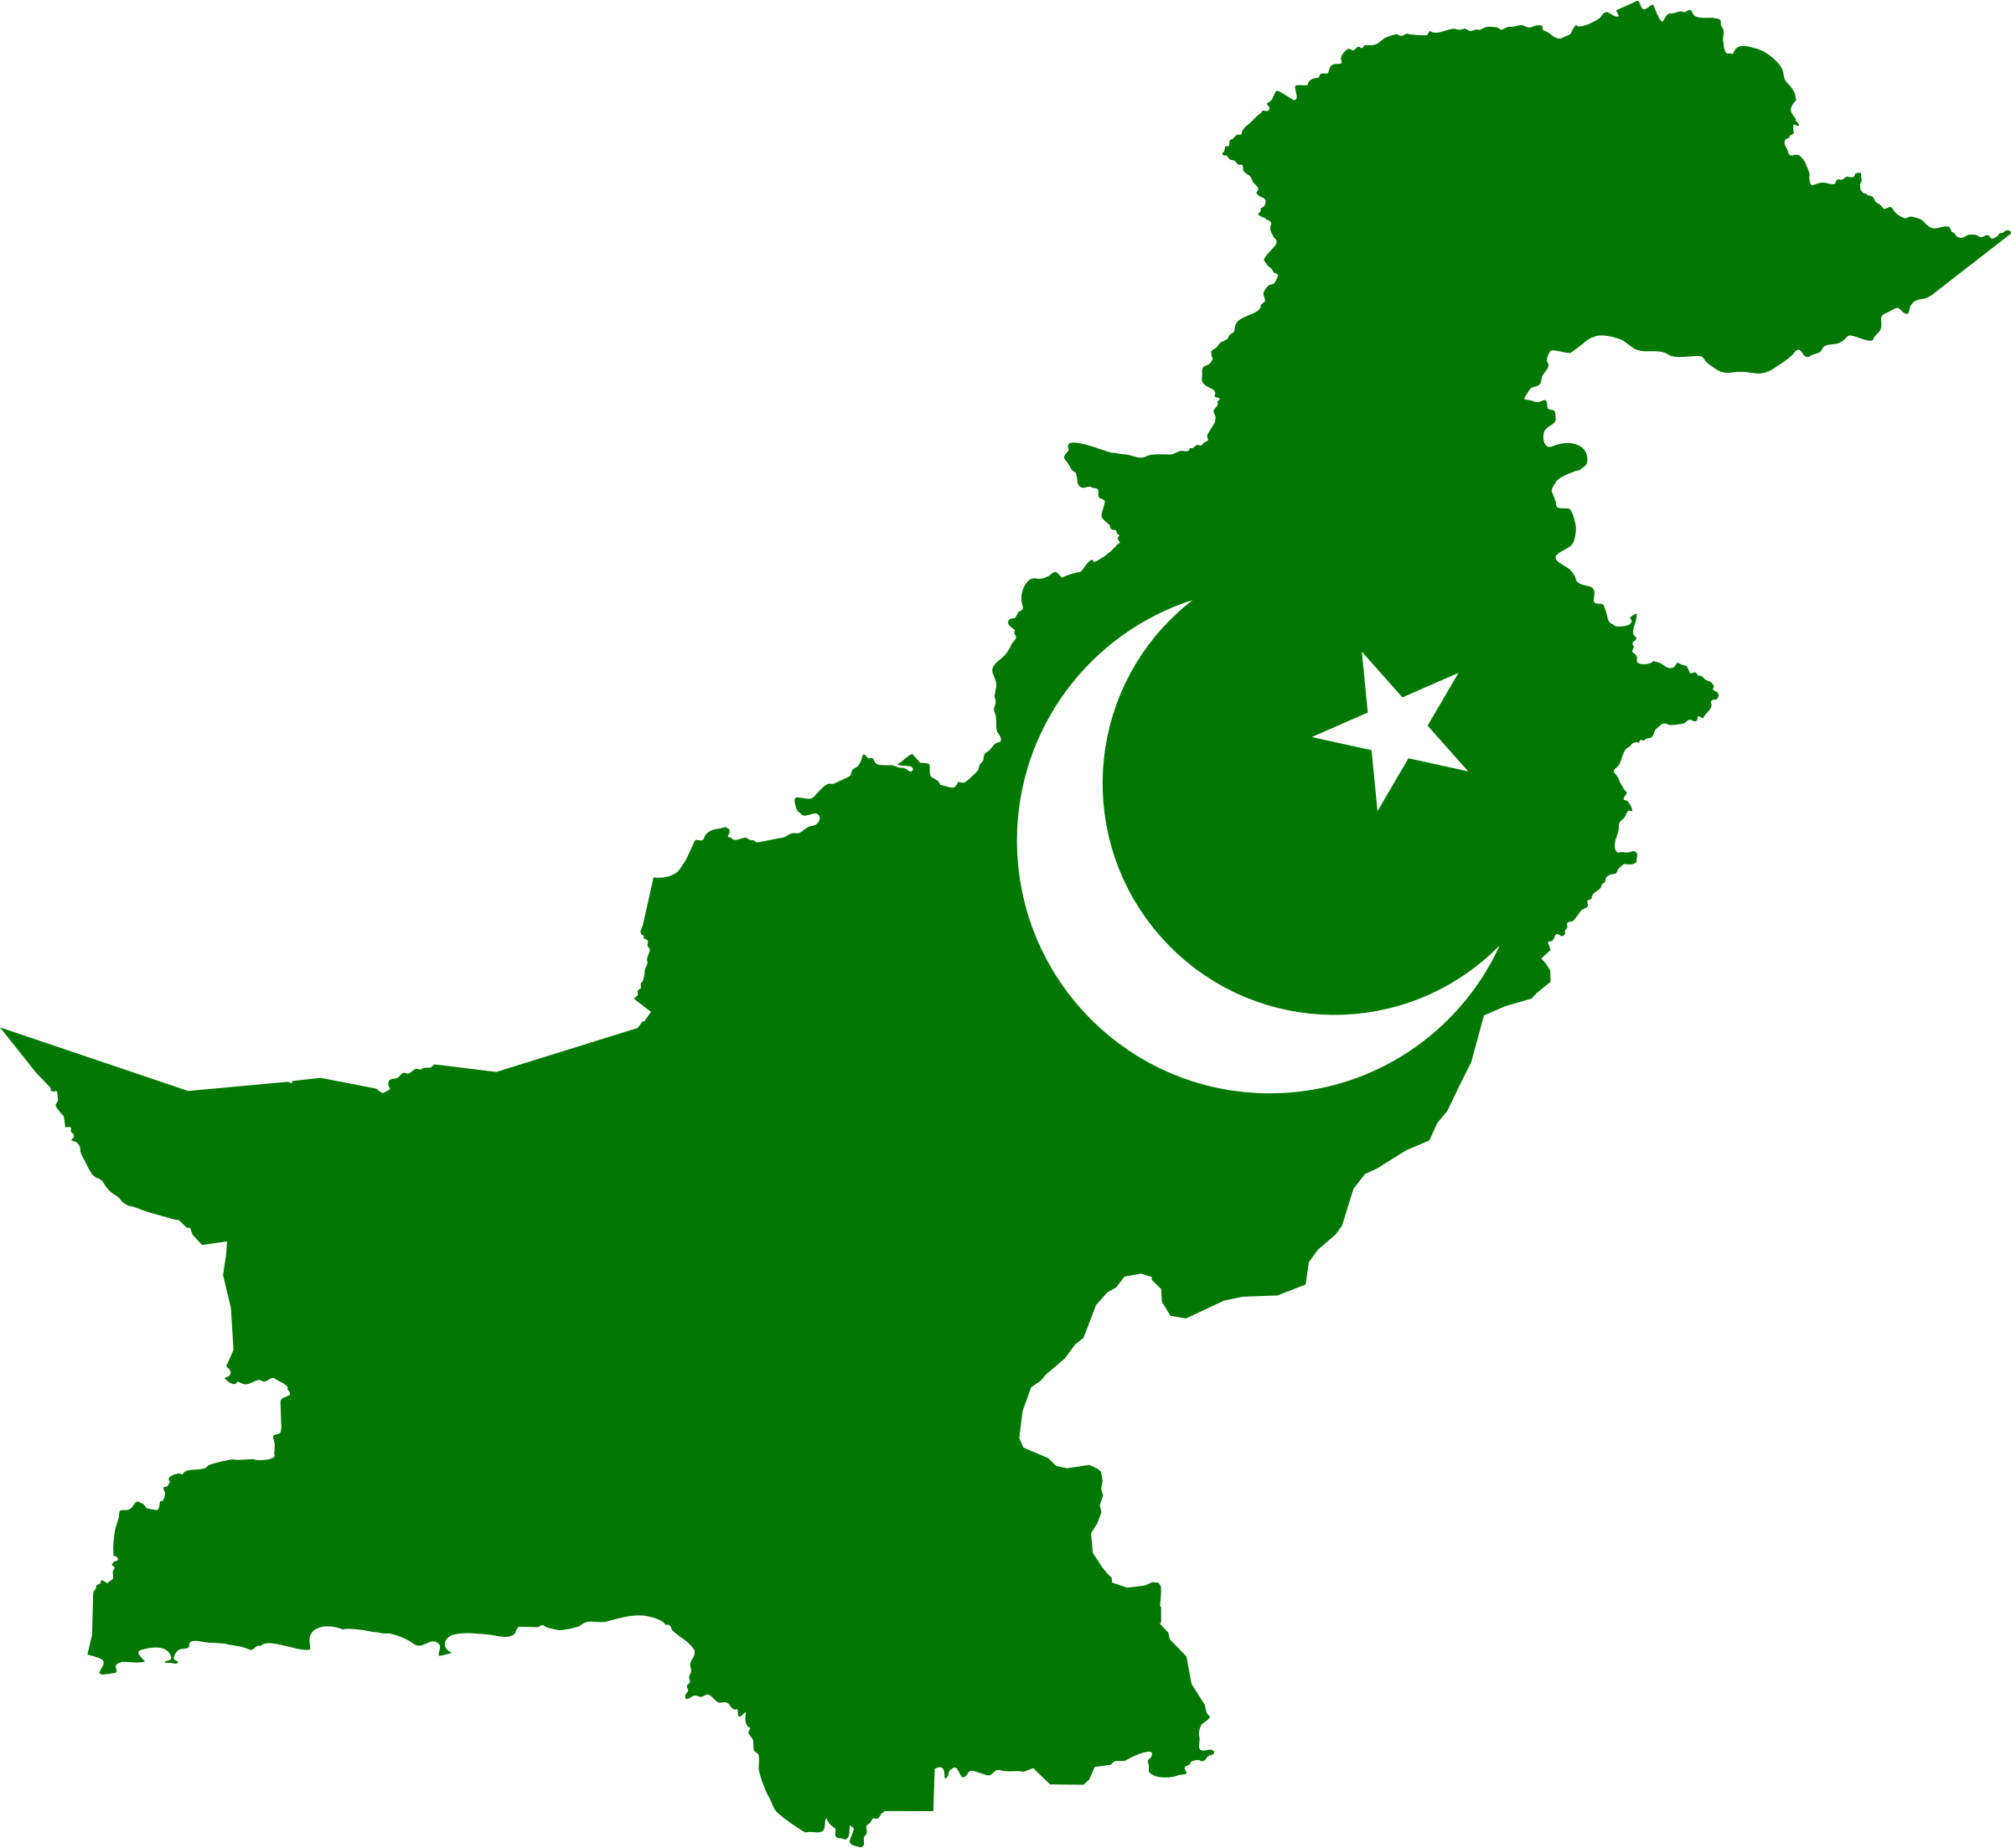 Pakistan Flag Map by GDJ